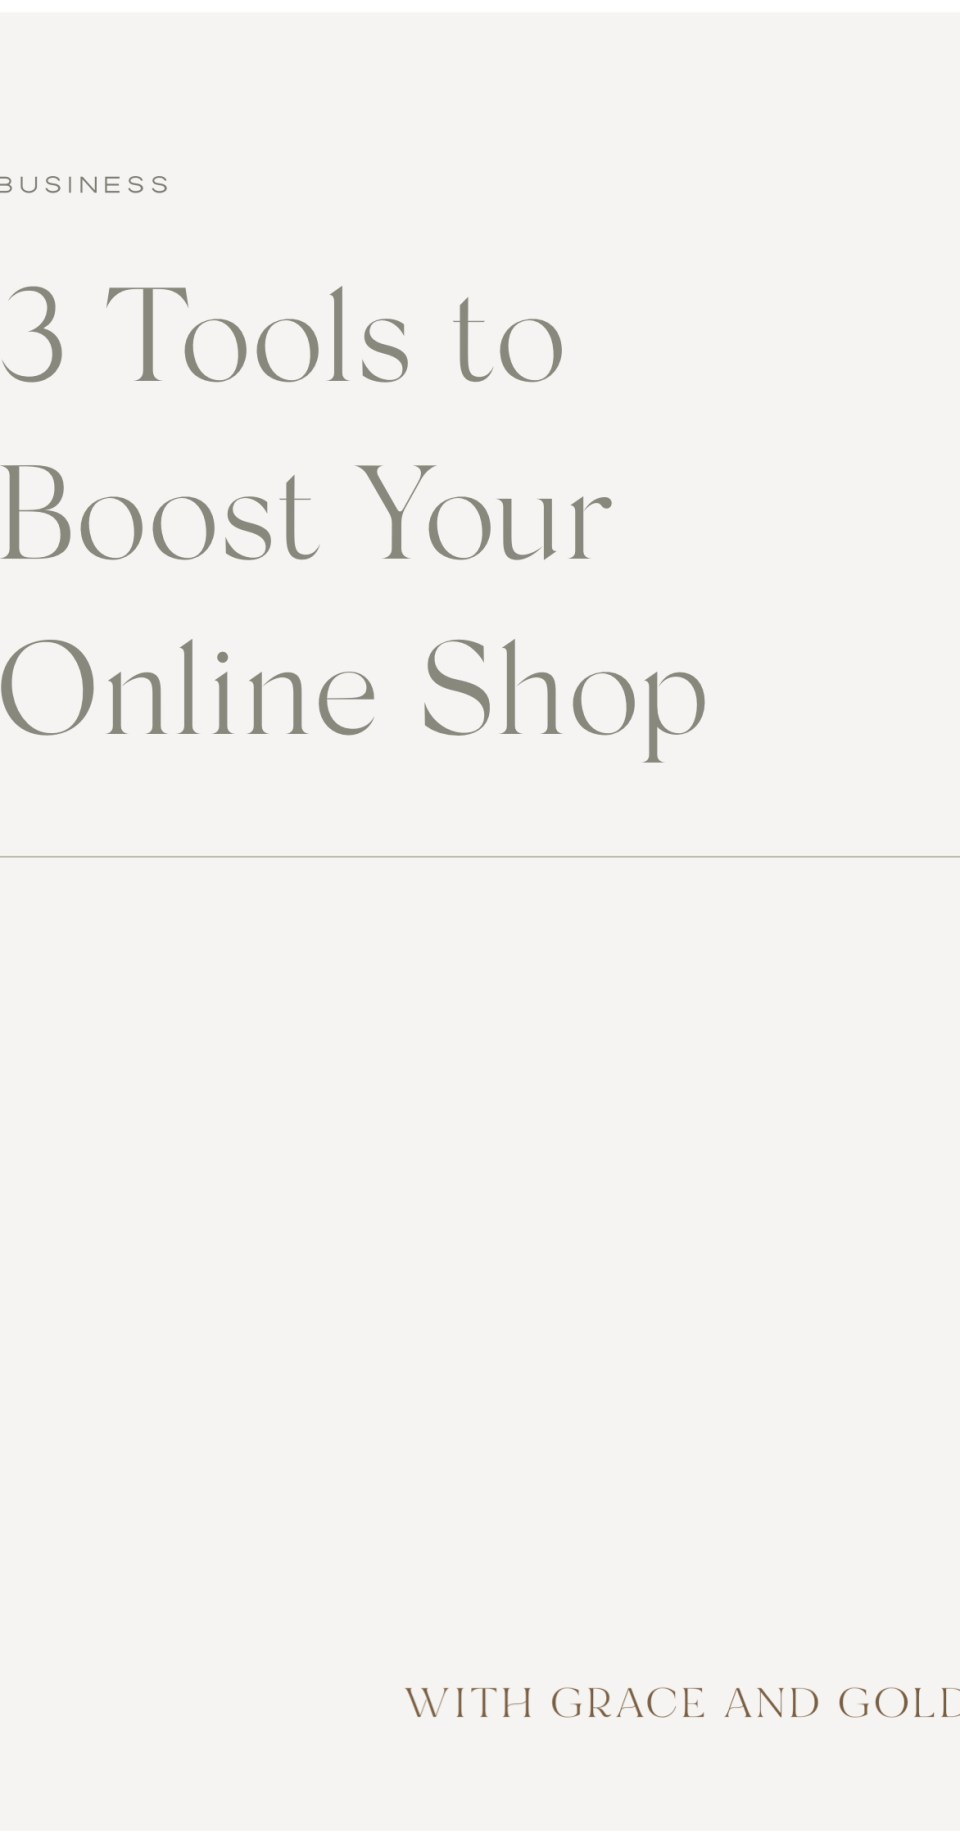 3 Tools to Boost Your Online Shop by With Grace and Gold